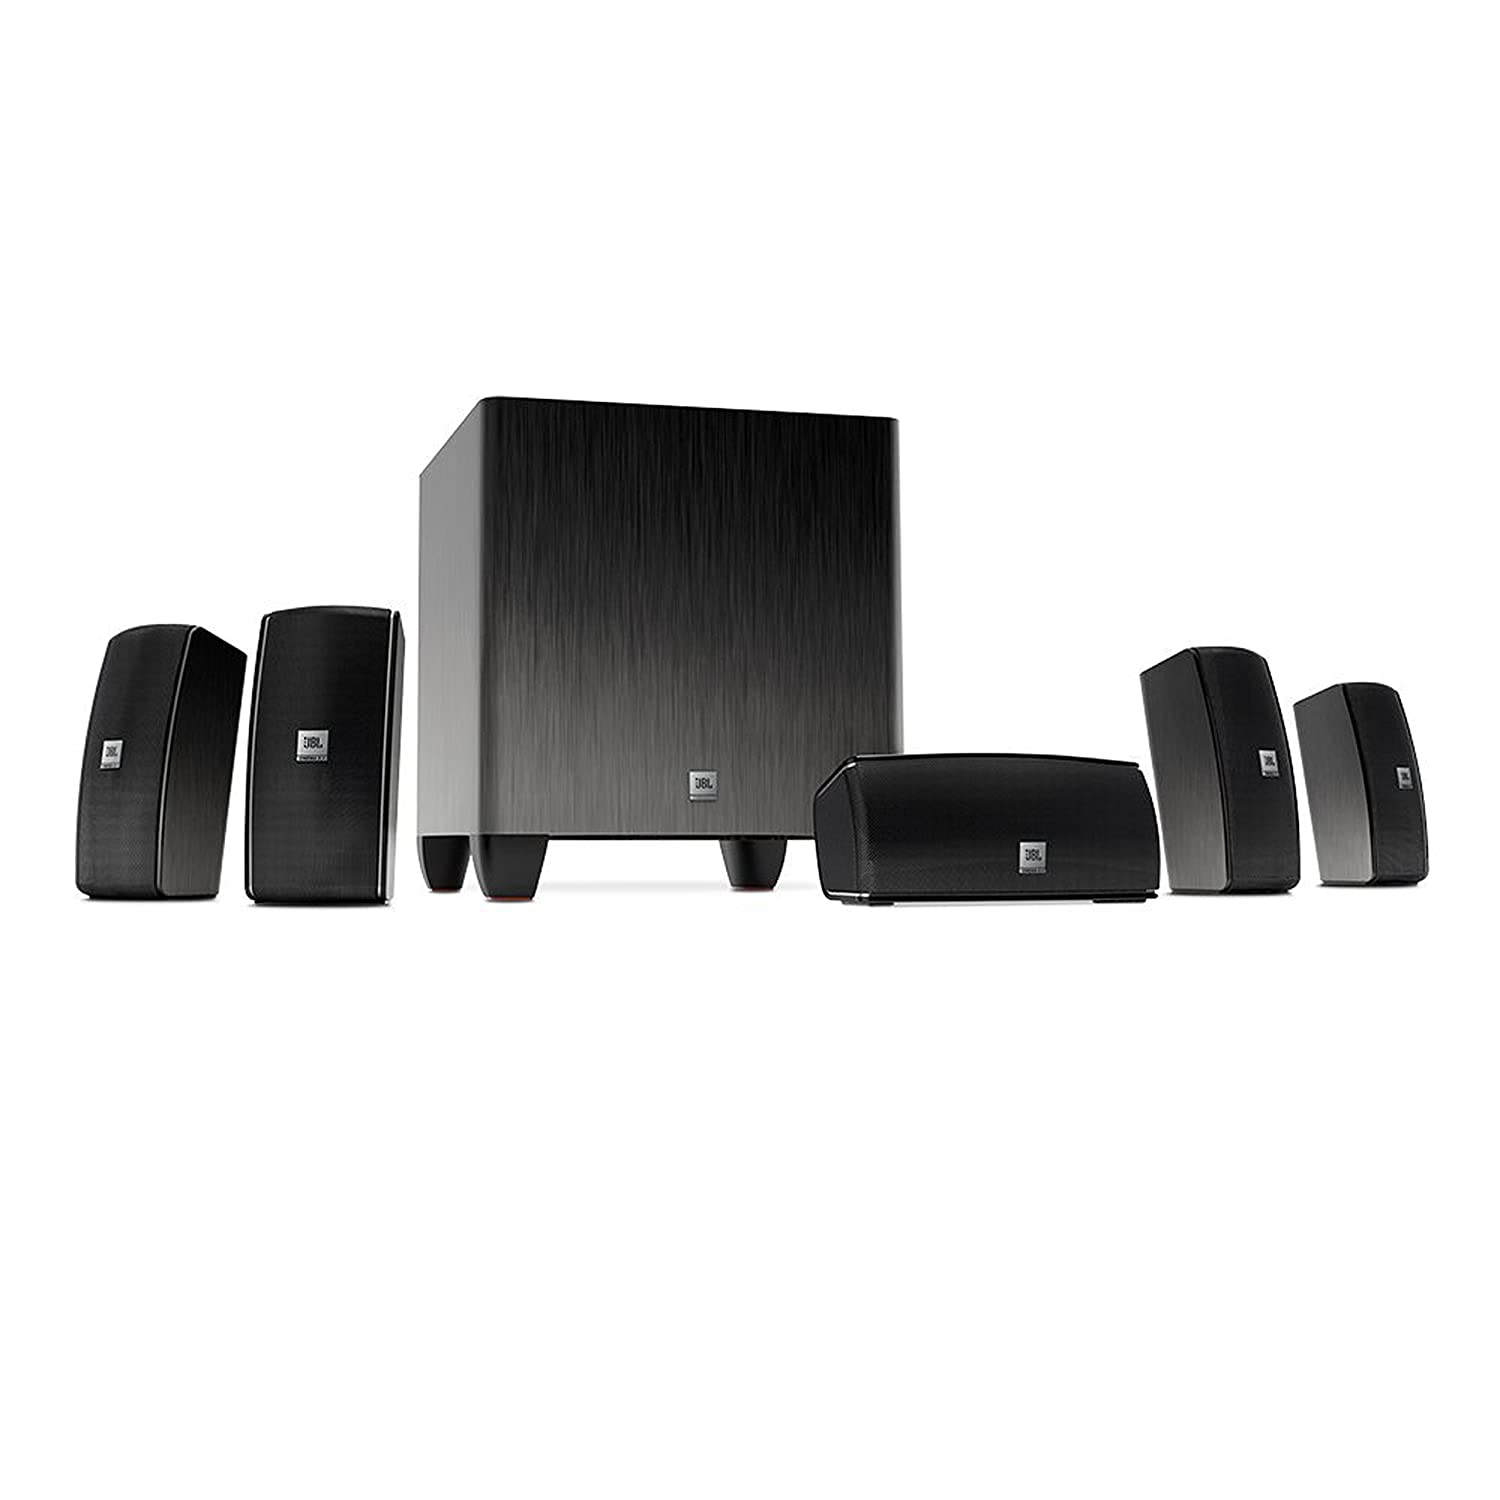 6fdff370d43dd JBL Home Cinema 610 Advanced Easy Install 5.1 Home Theatre Surround Sound  Speaker System Including Five Satellite Speakers and 60 W Powered Subwoofer  ...